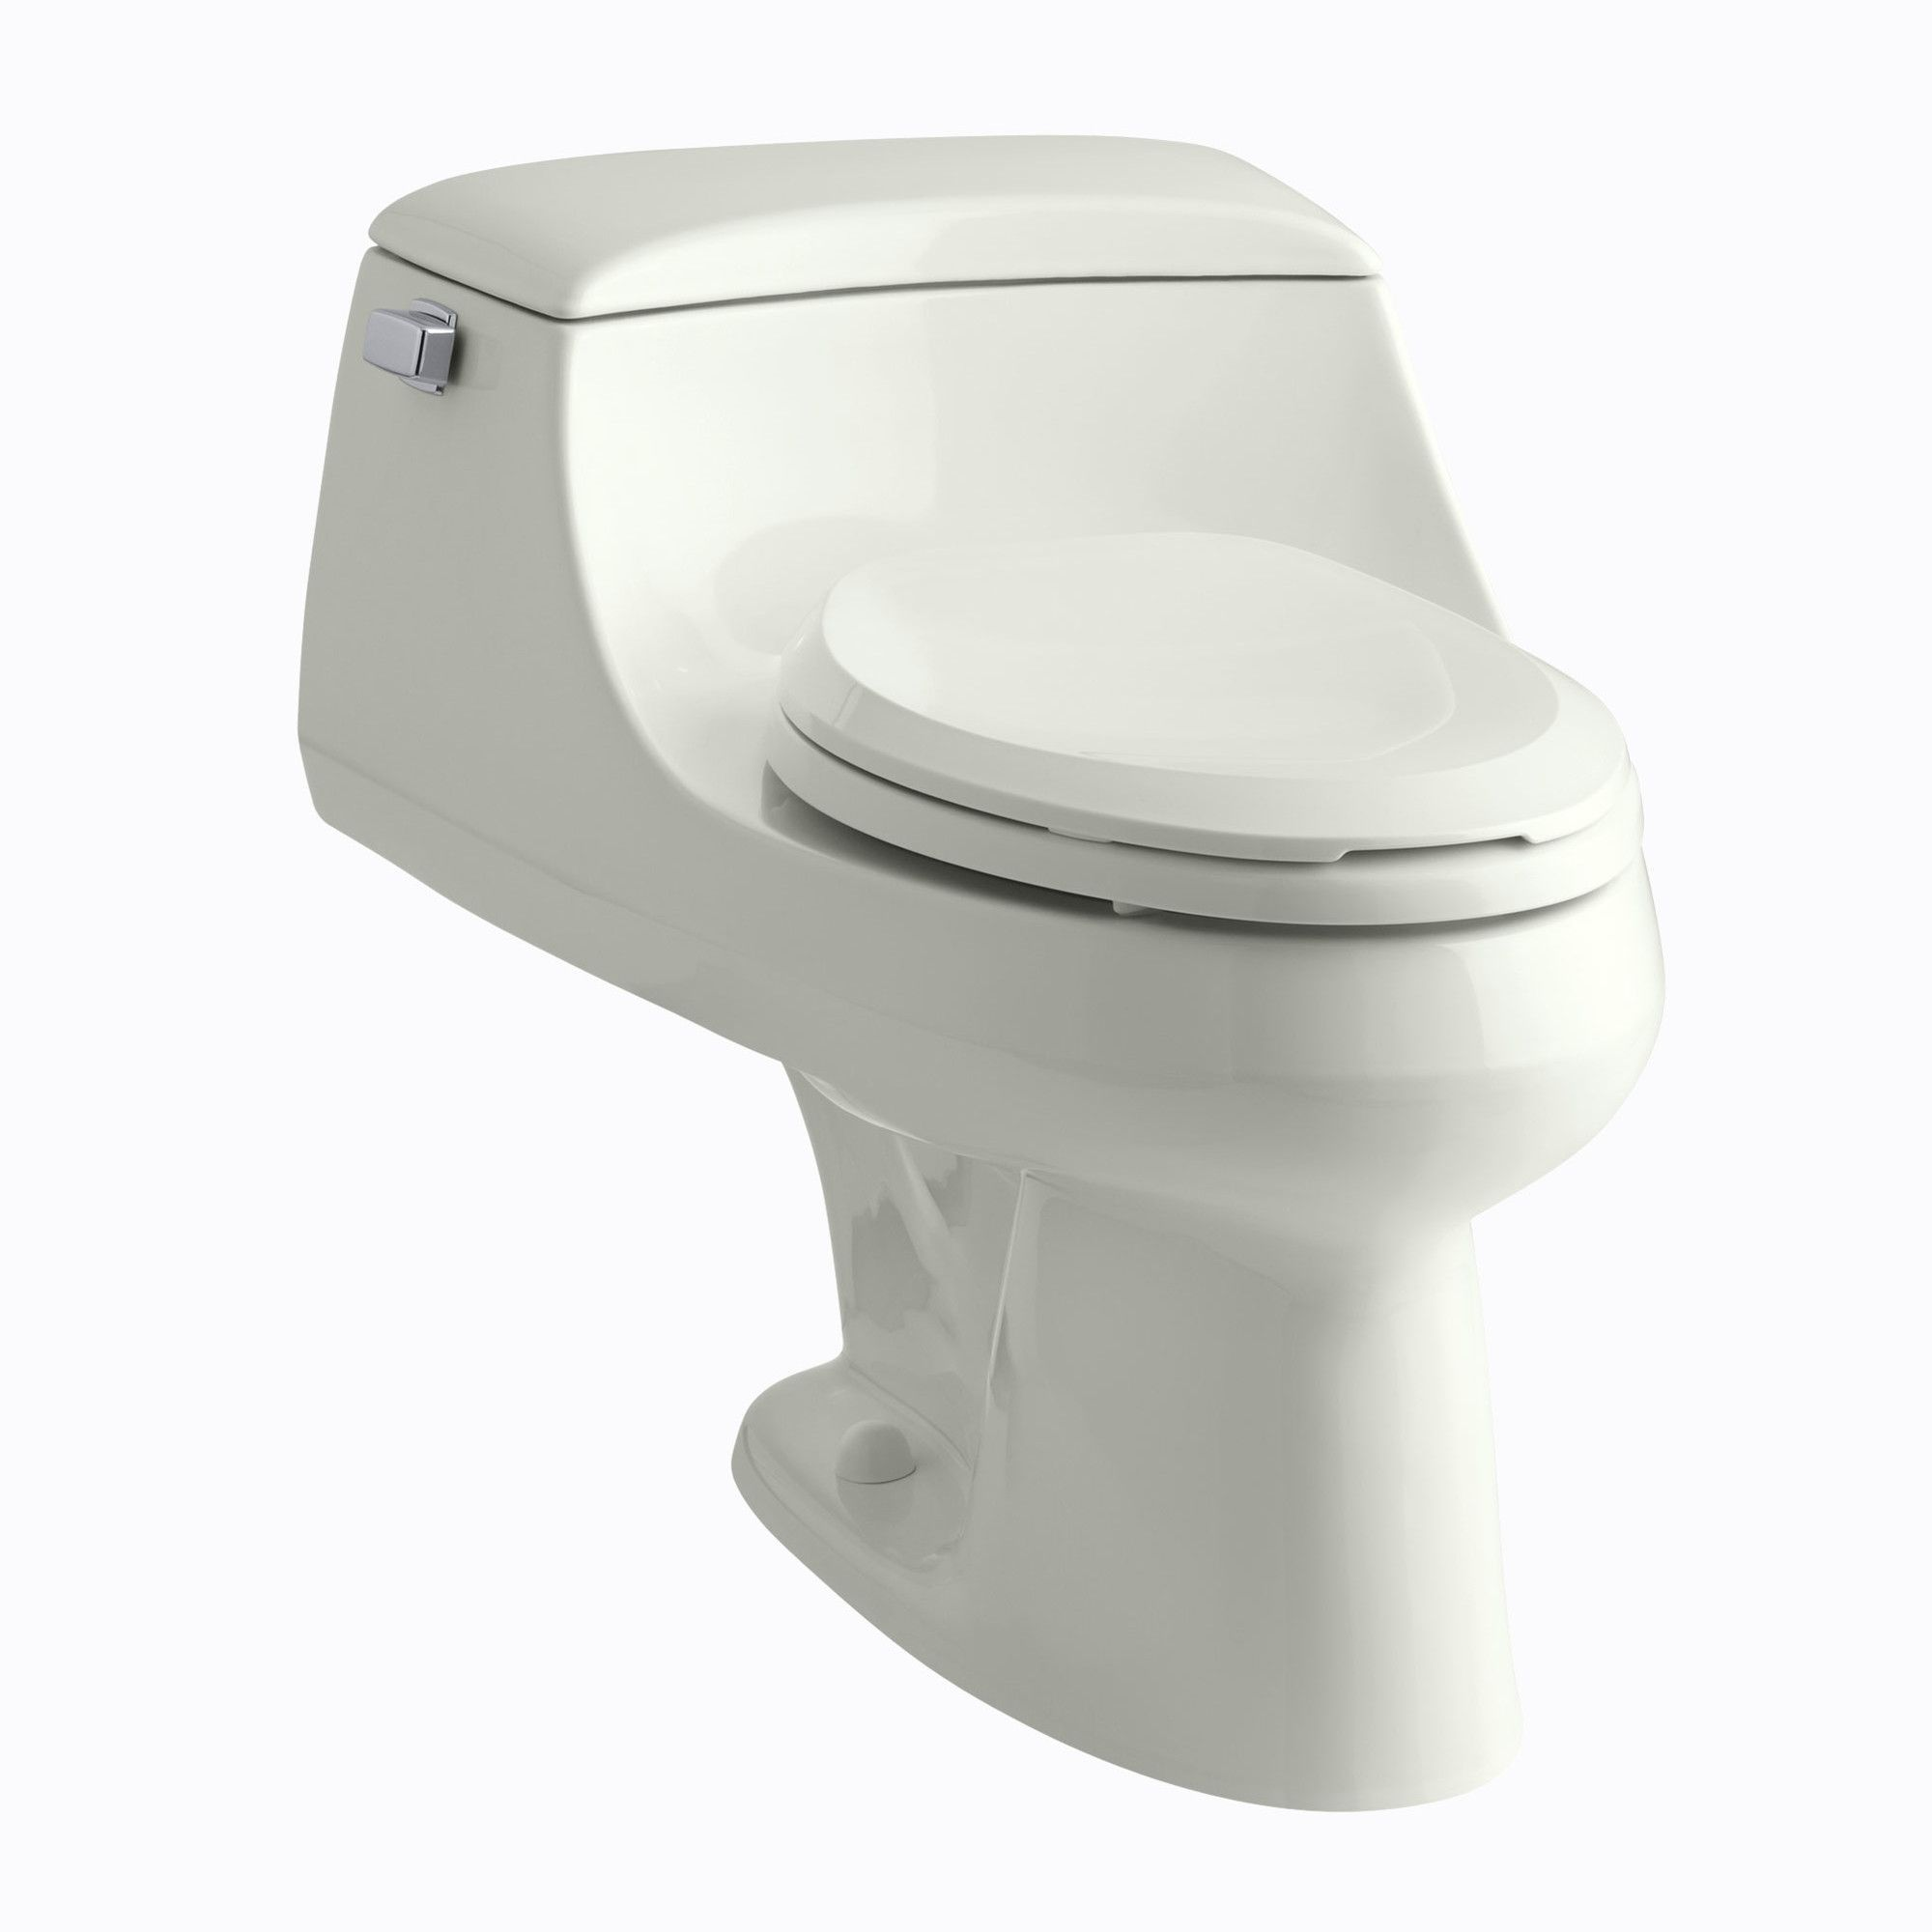 San Raphael One-Piece Elongated 1.6 GPF Toilet with Ingenium Flush ...